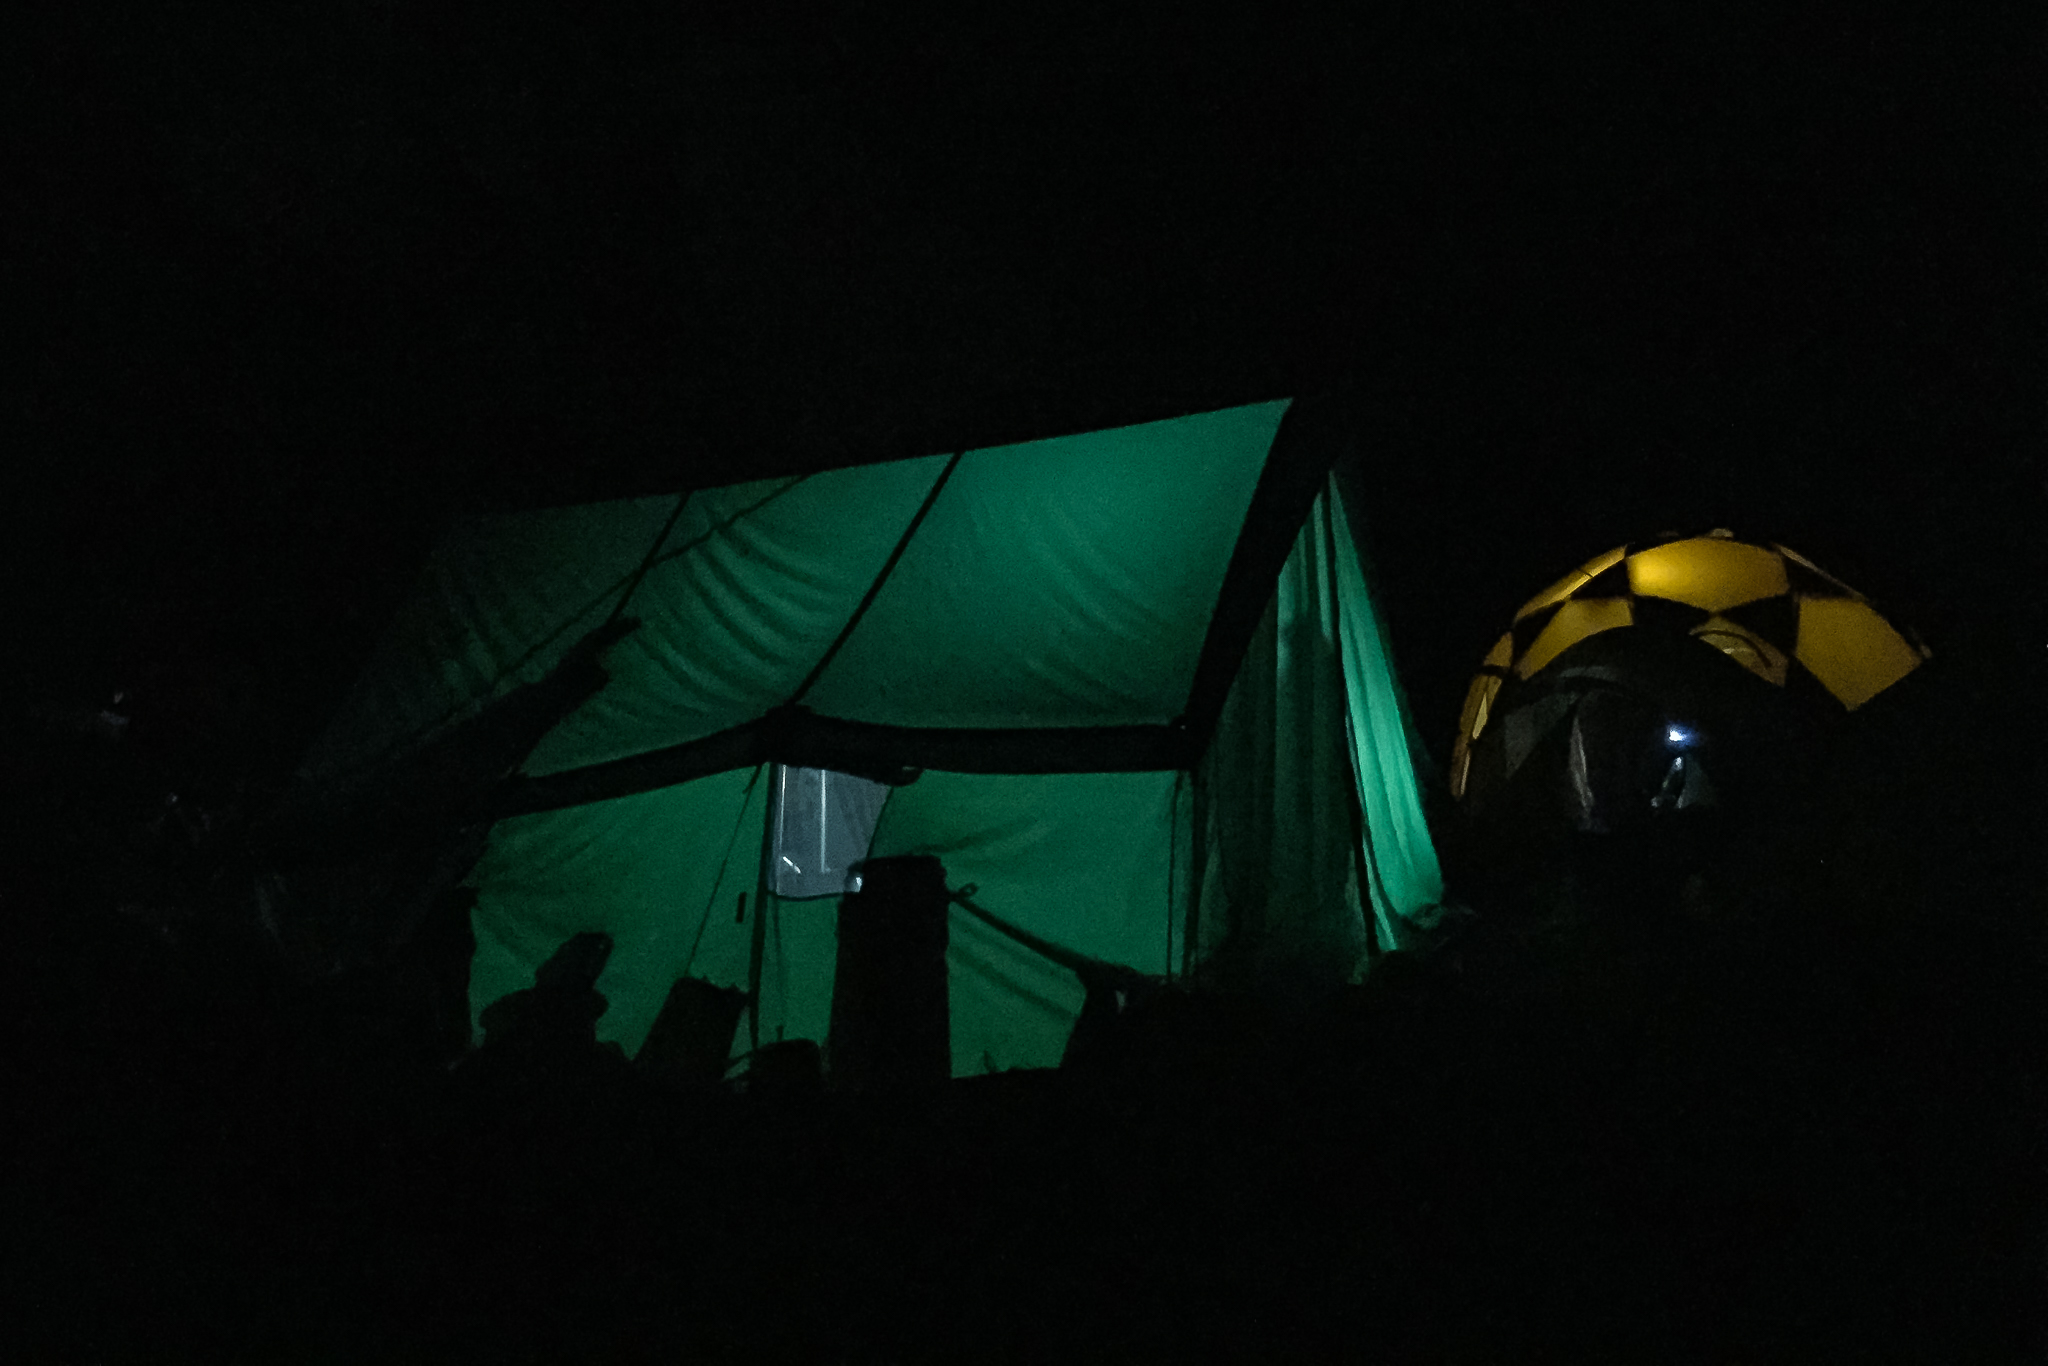 Our dining tent at Island Peak base camp, taken at midnight